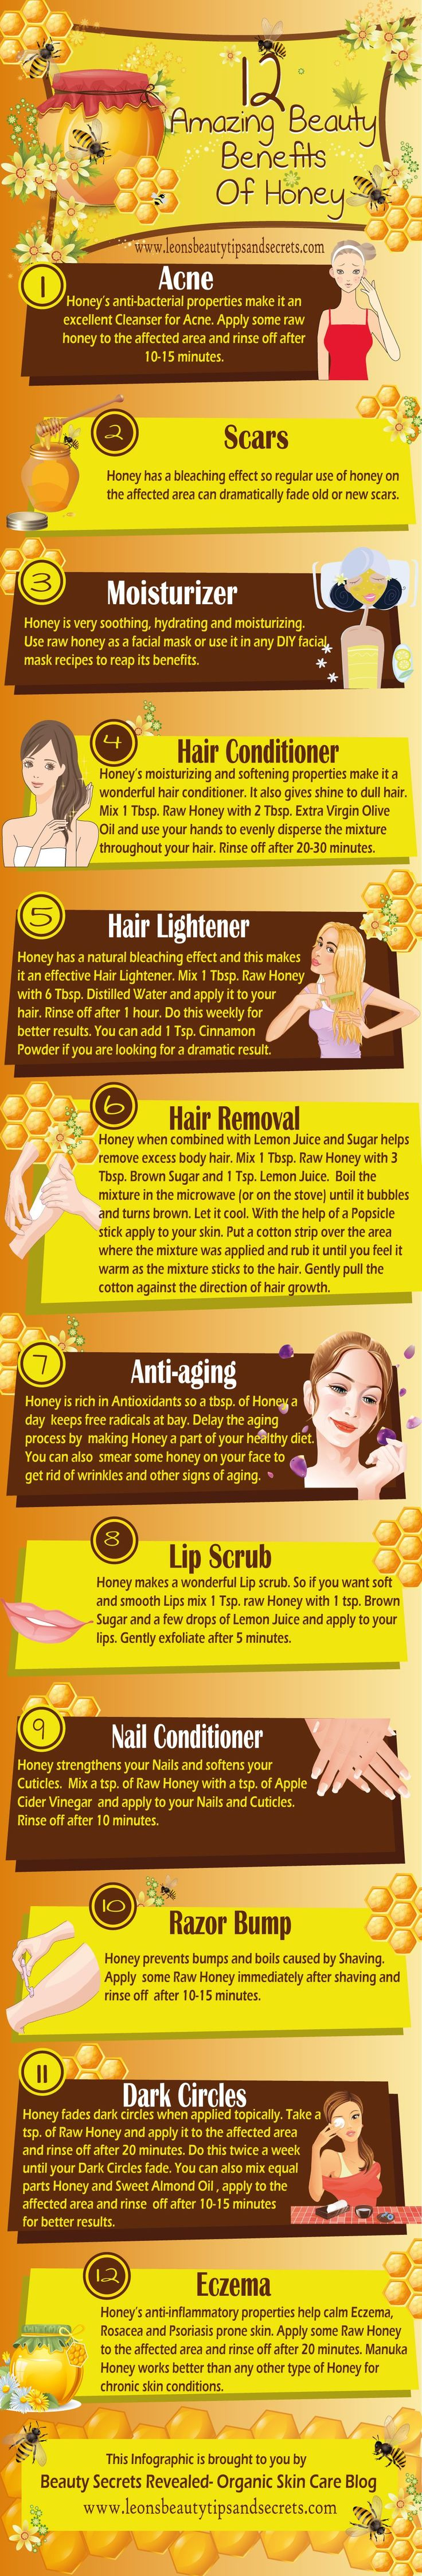 12 Amazing Beauty Benefits Of Honey   #Infographic #Beauty #Honey